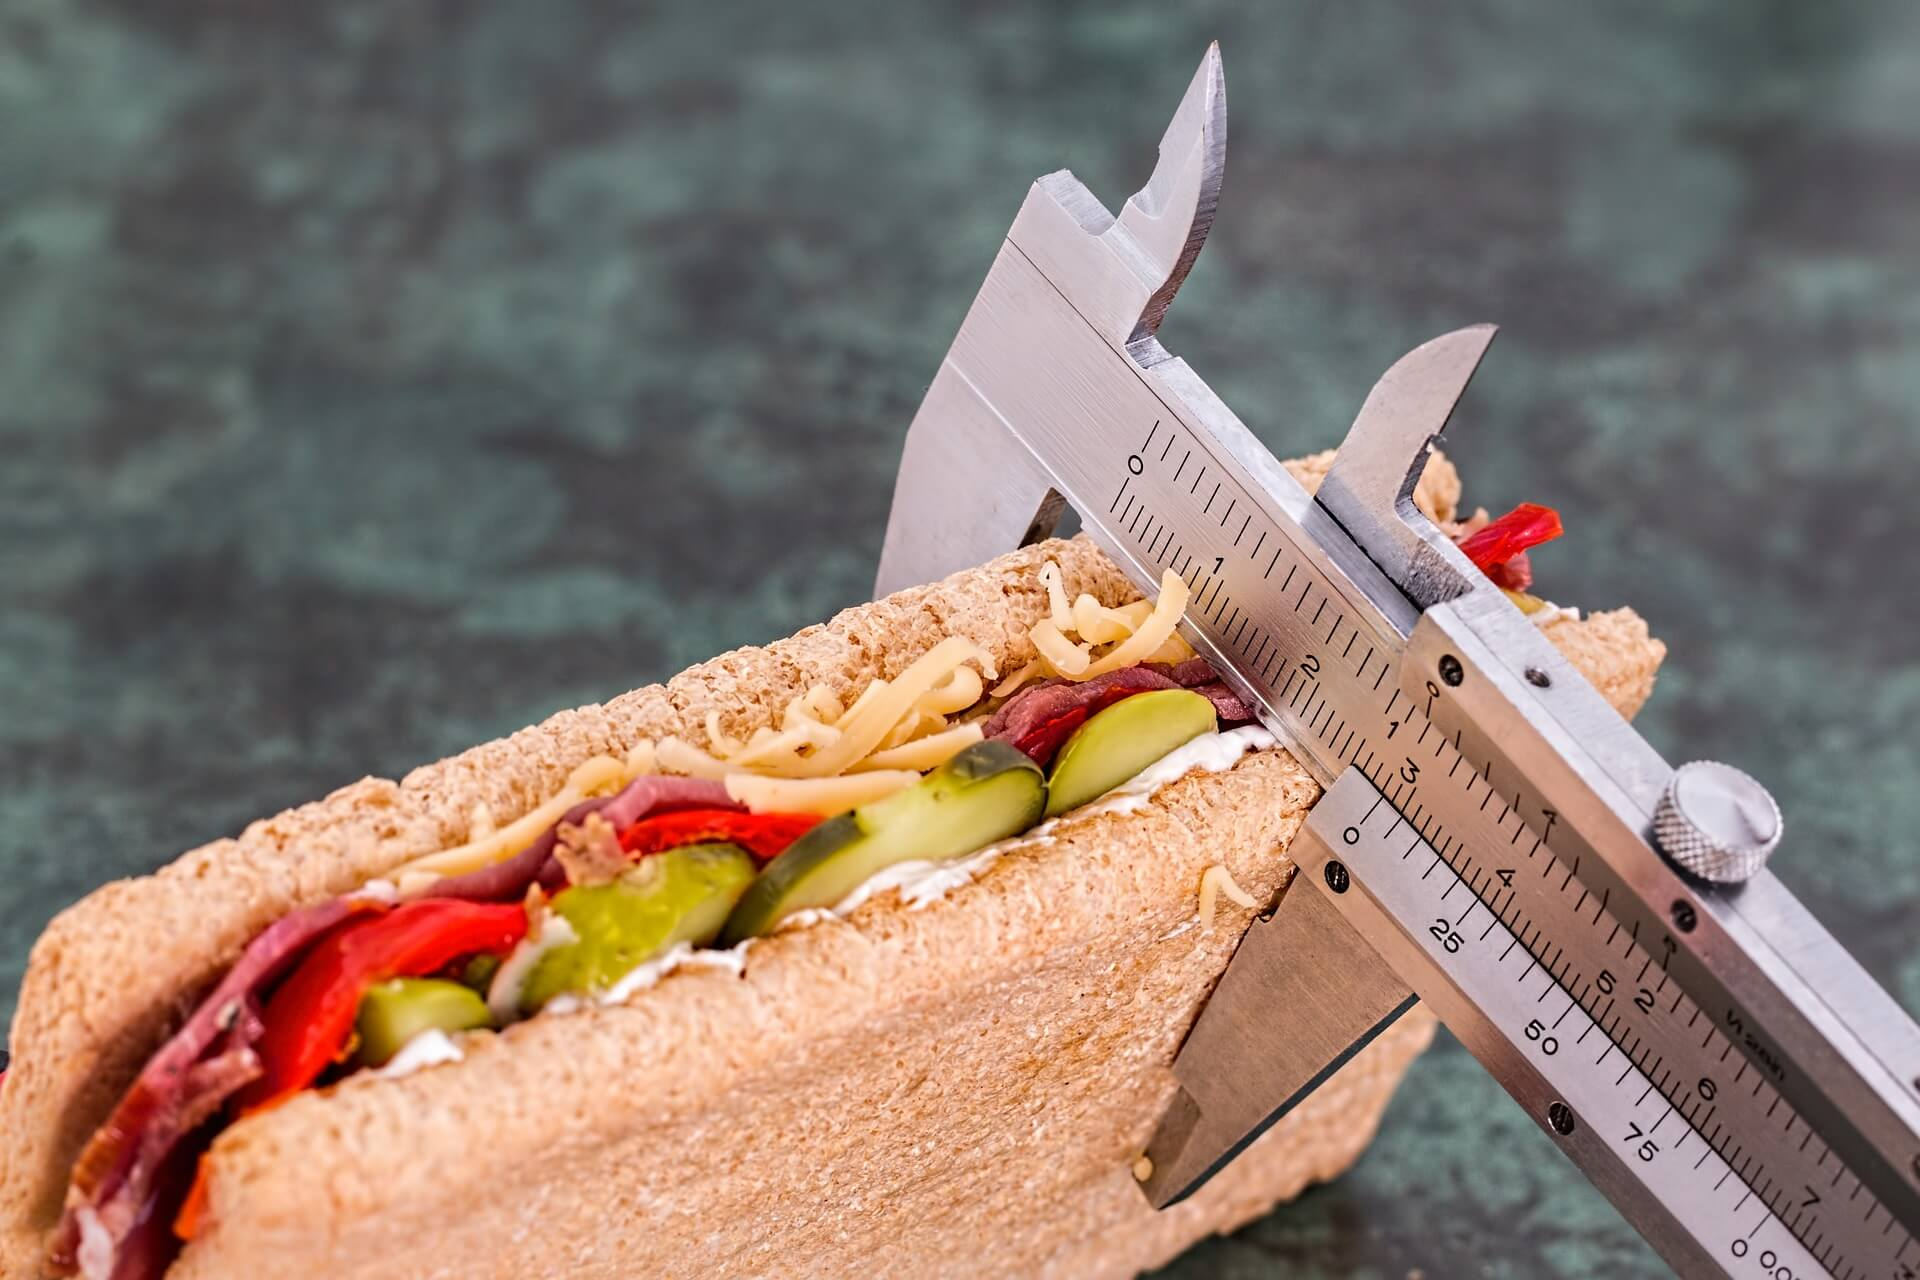 Restricting your diet can actually cause you to store more fat